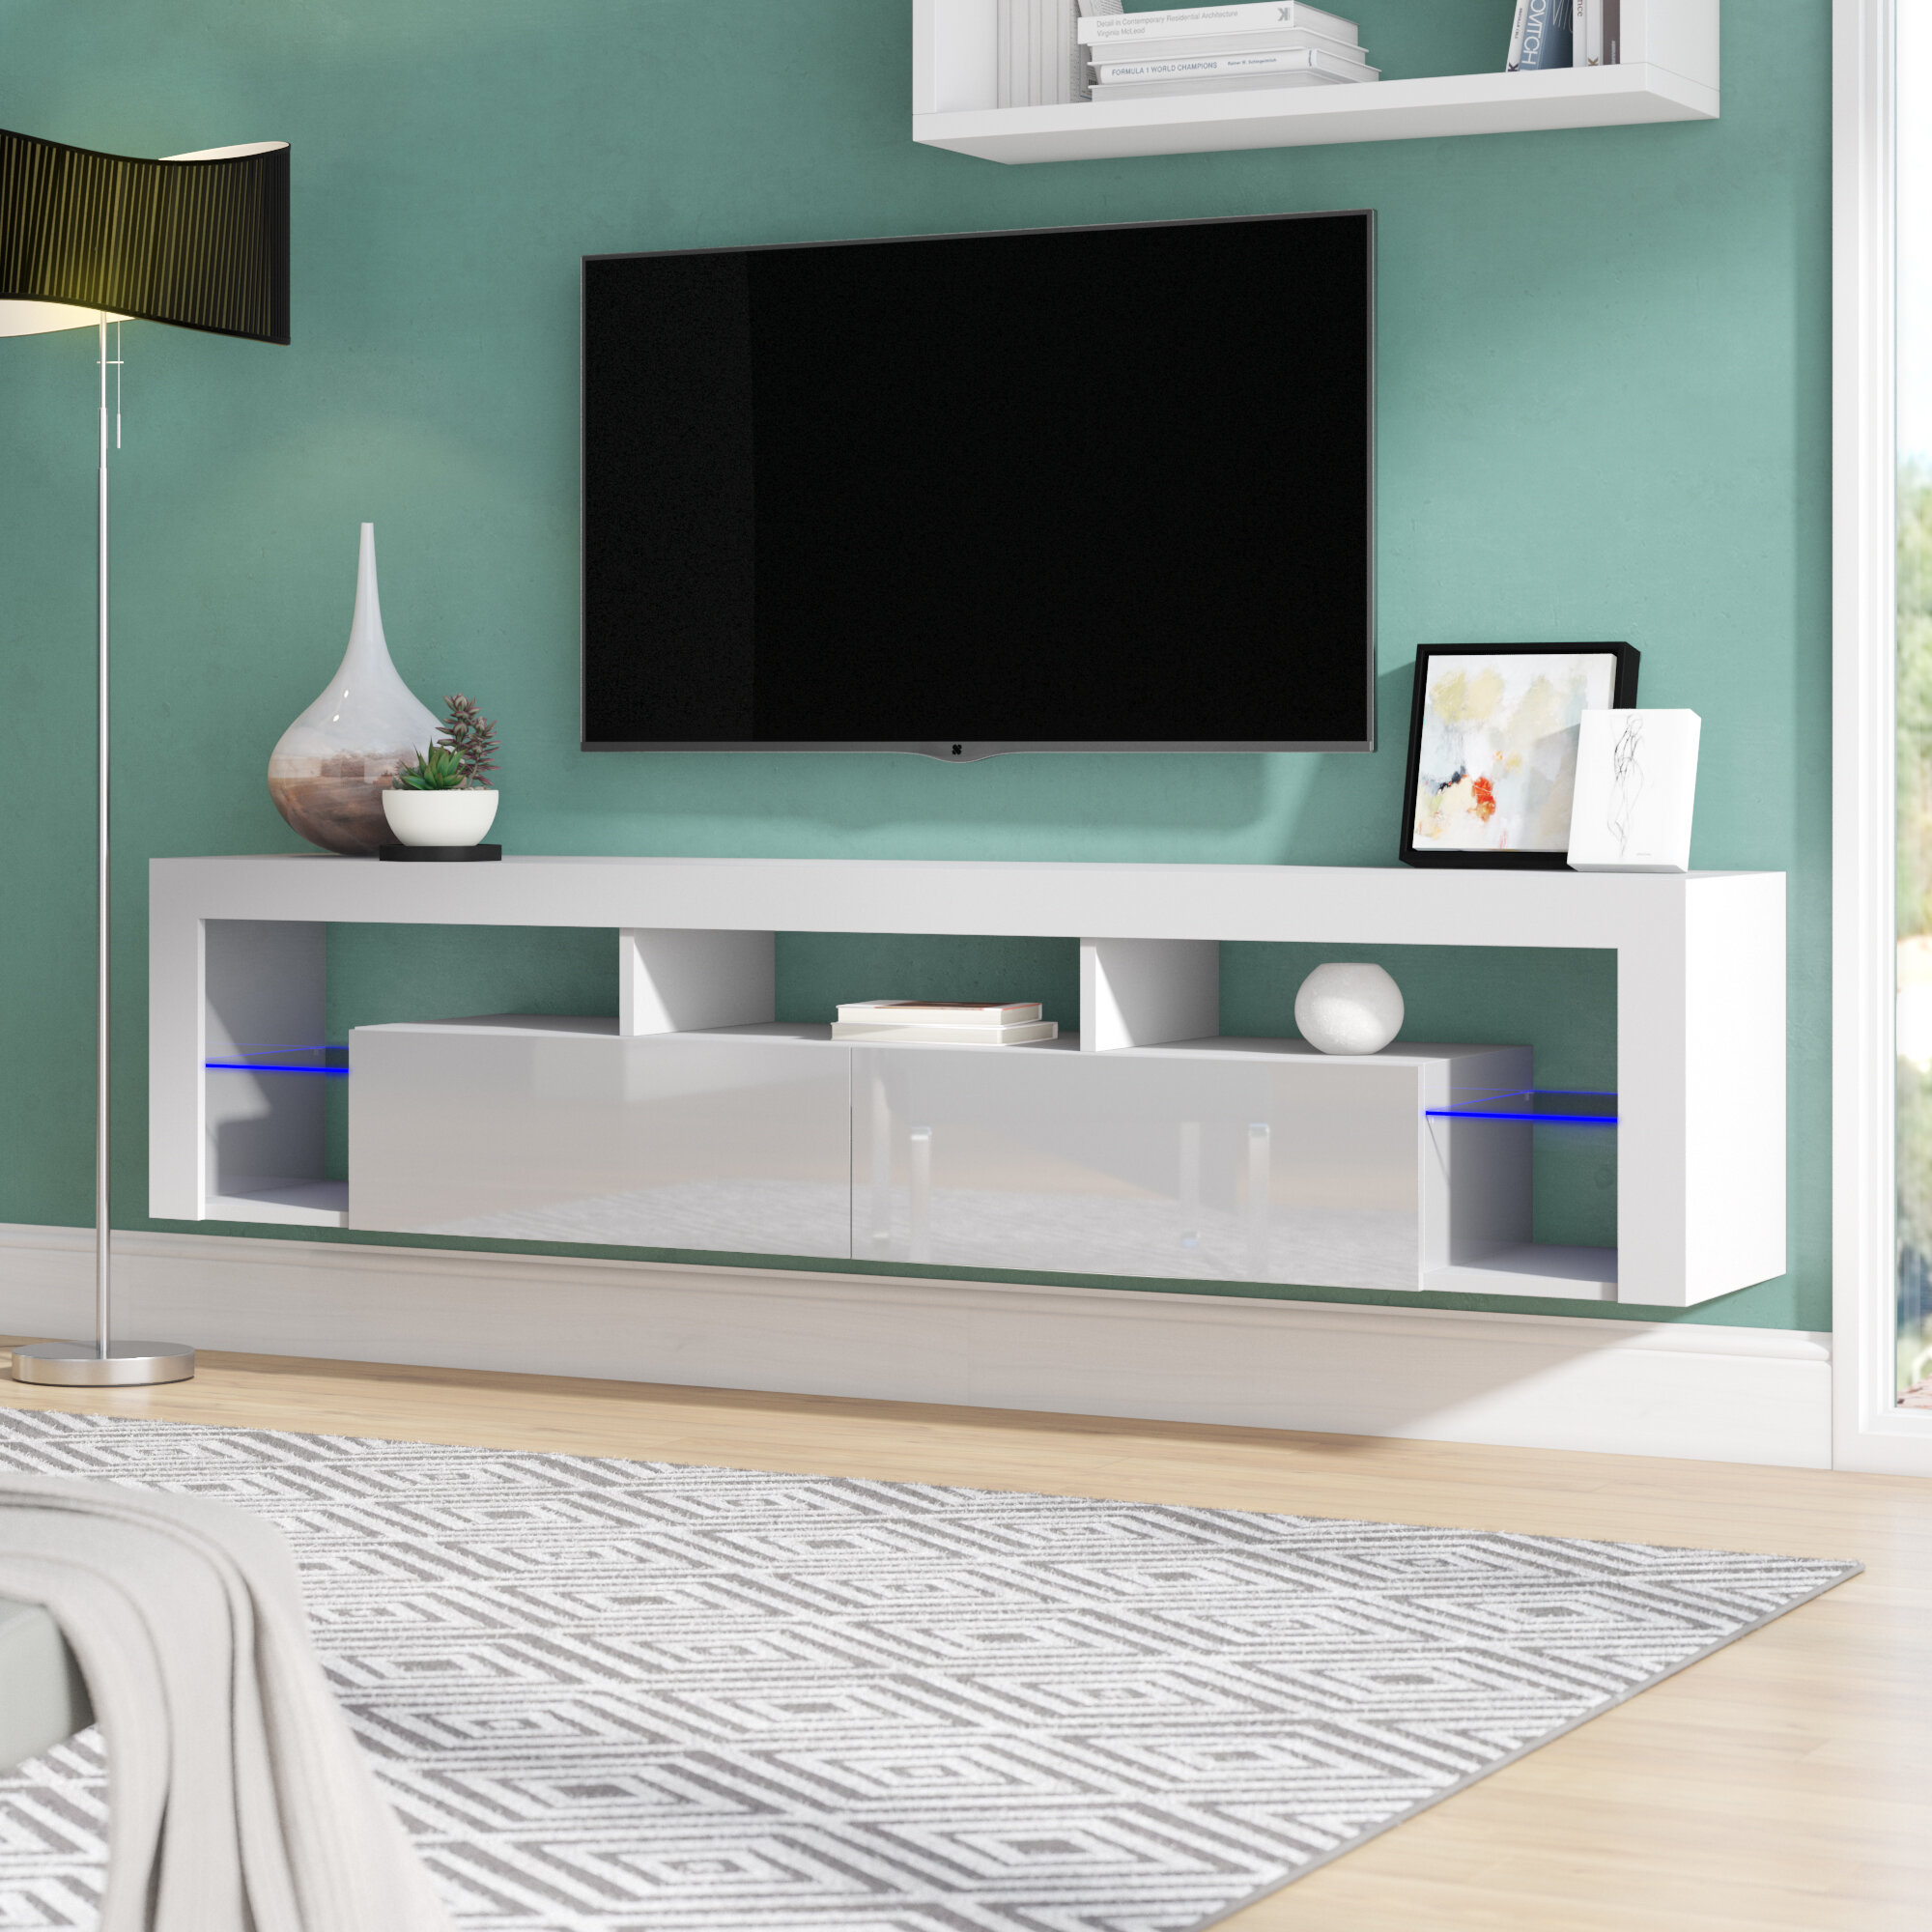 Orren Ellis Bottcher Wall Mounted Floating Tv Stand For Tvs Up To 88